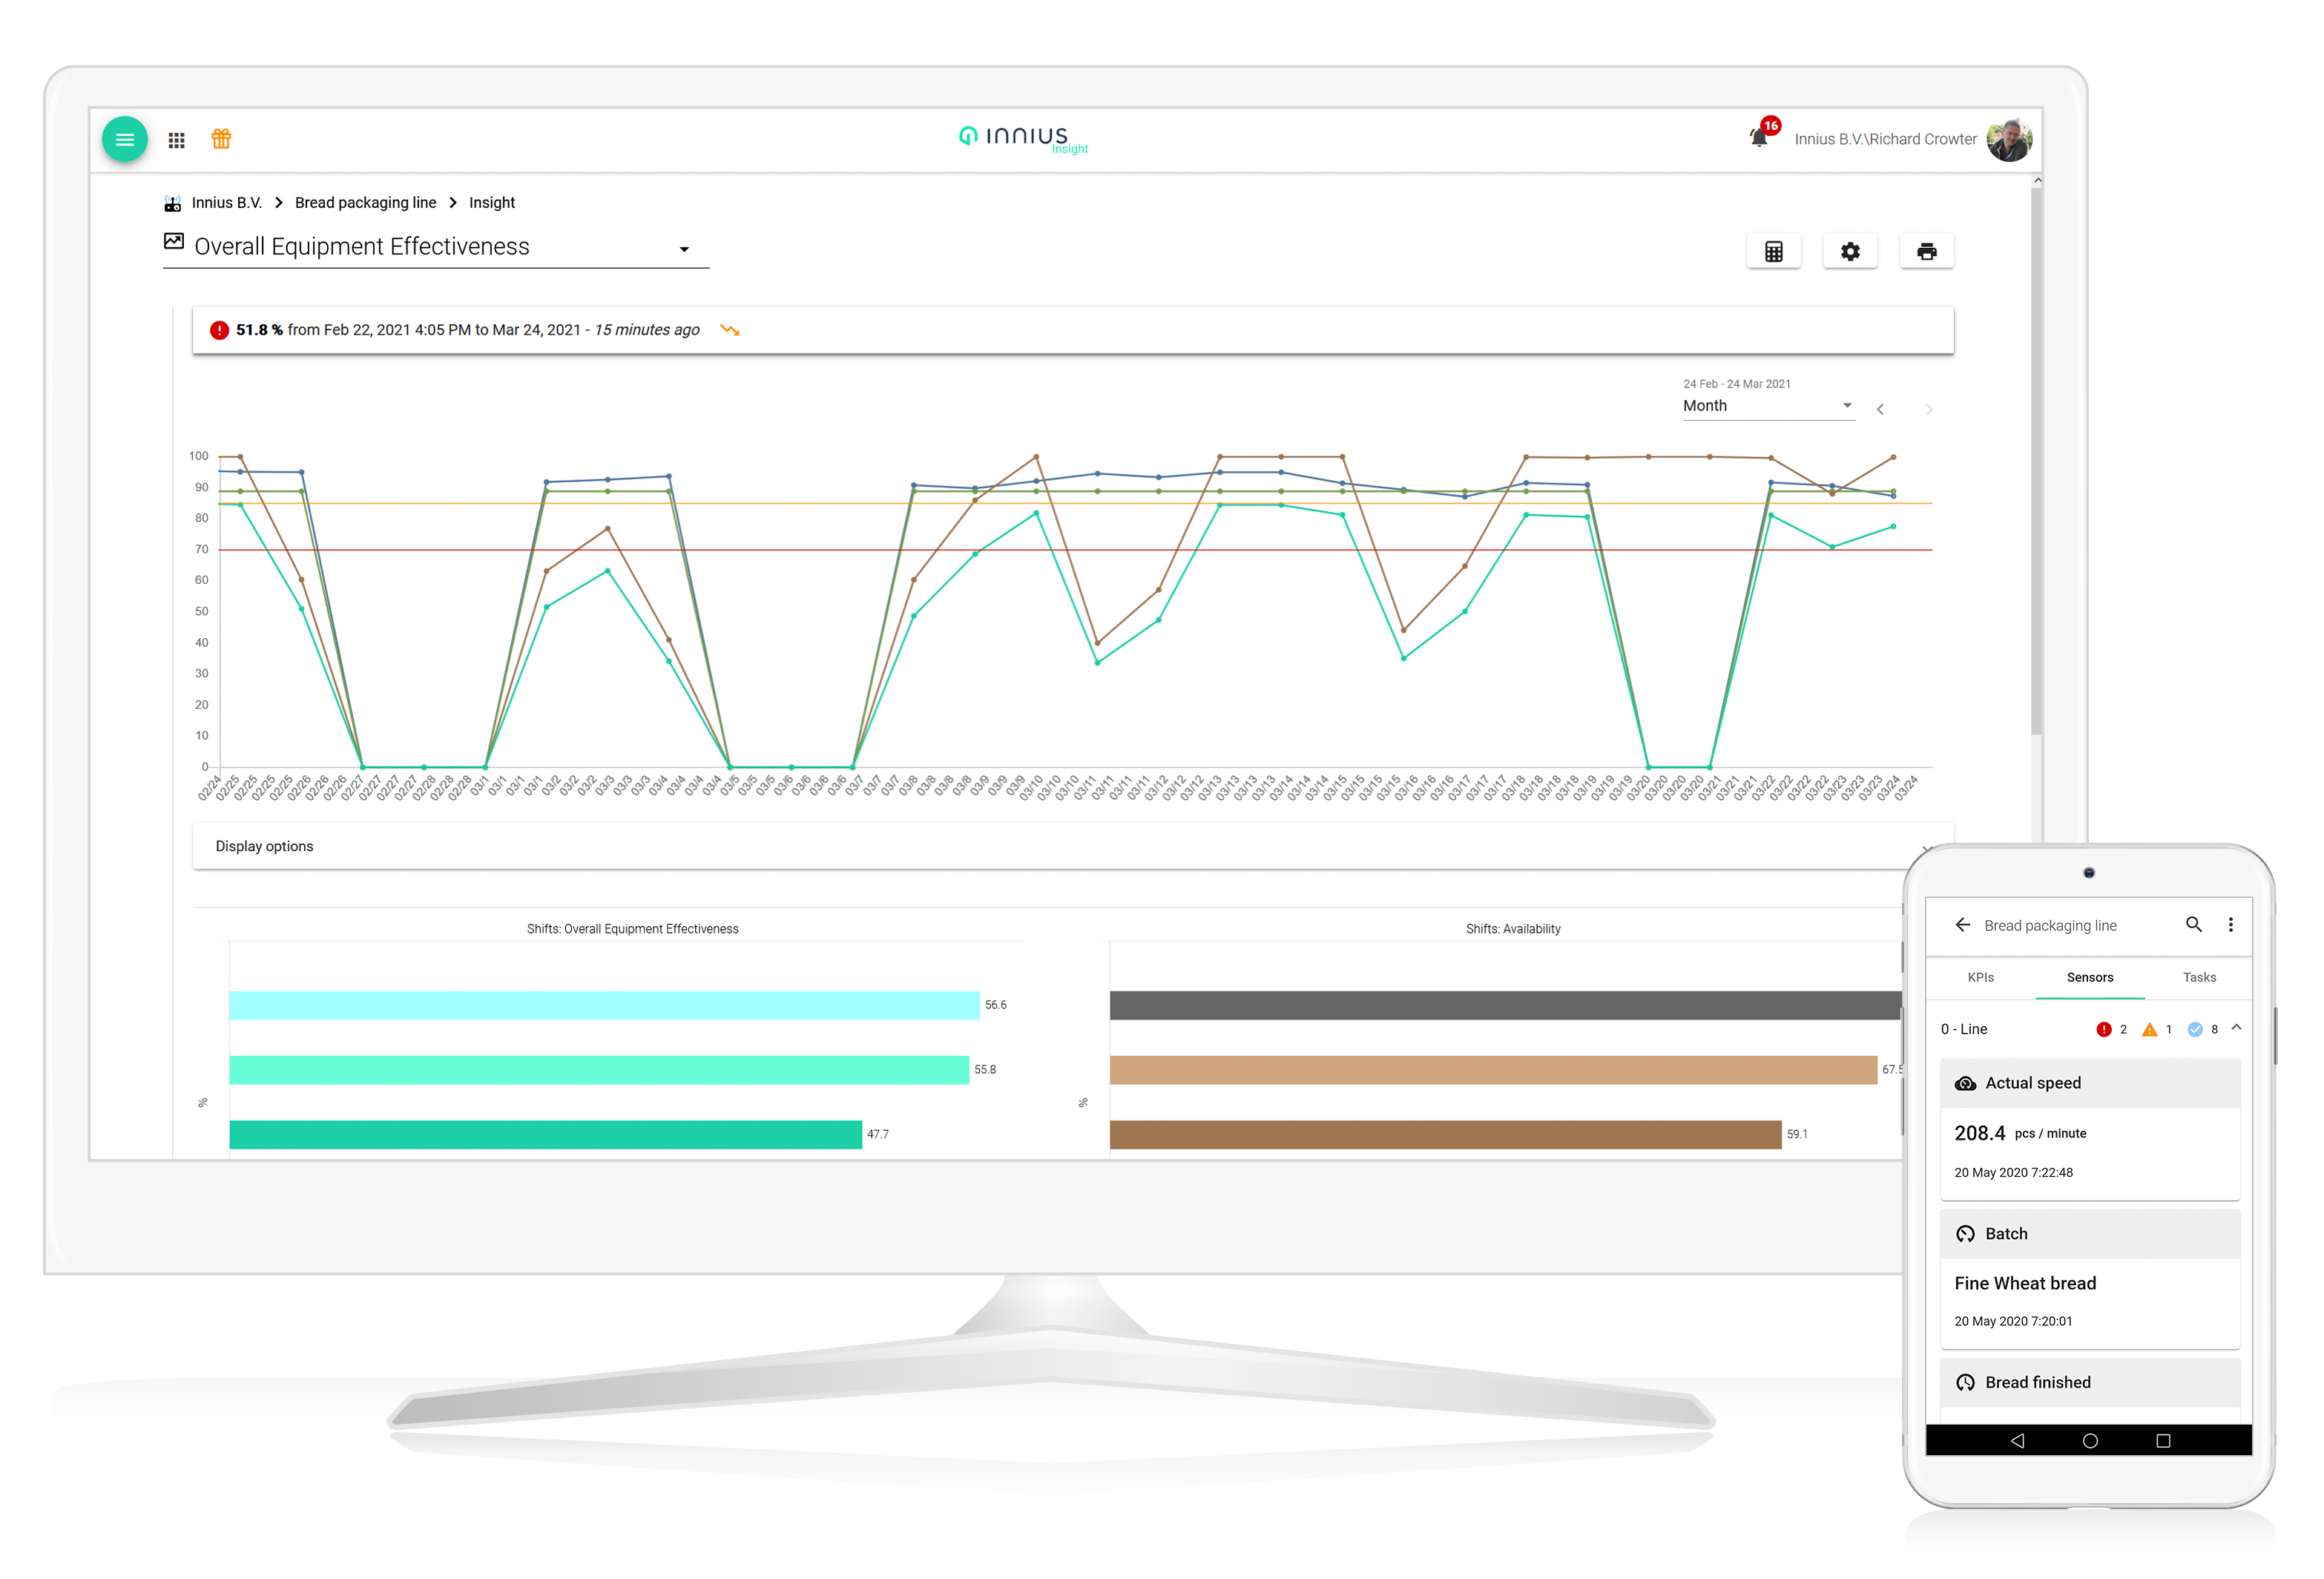 Innius Screens for Desktop and Mobile showing OEE and Sensors